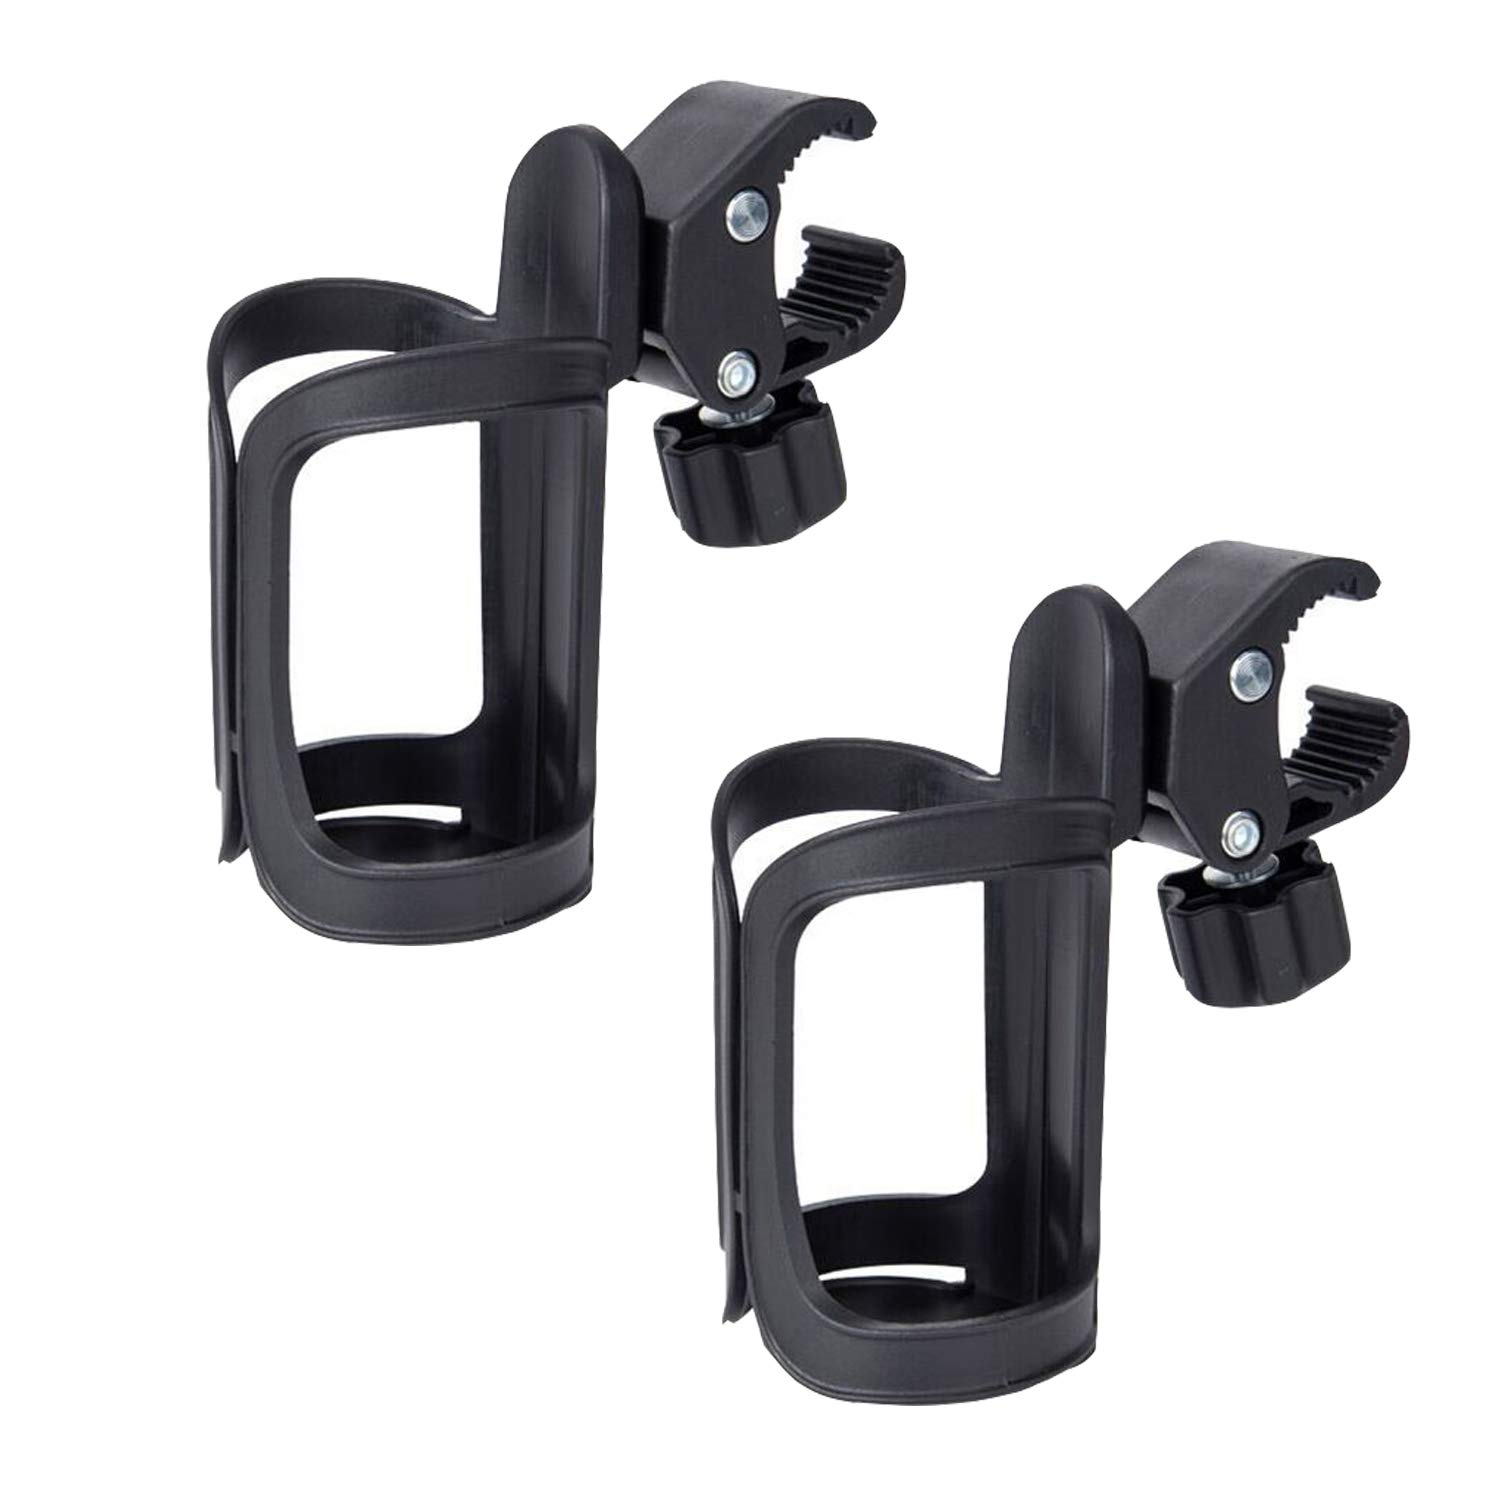 Stroller Cup Holder, 2 Pack Universal Cup and Water Bottle Holder for Baby Stroller, Baby Trolley, Bike, Wheelchair